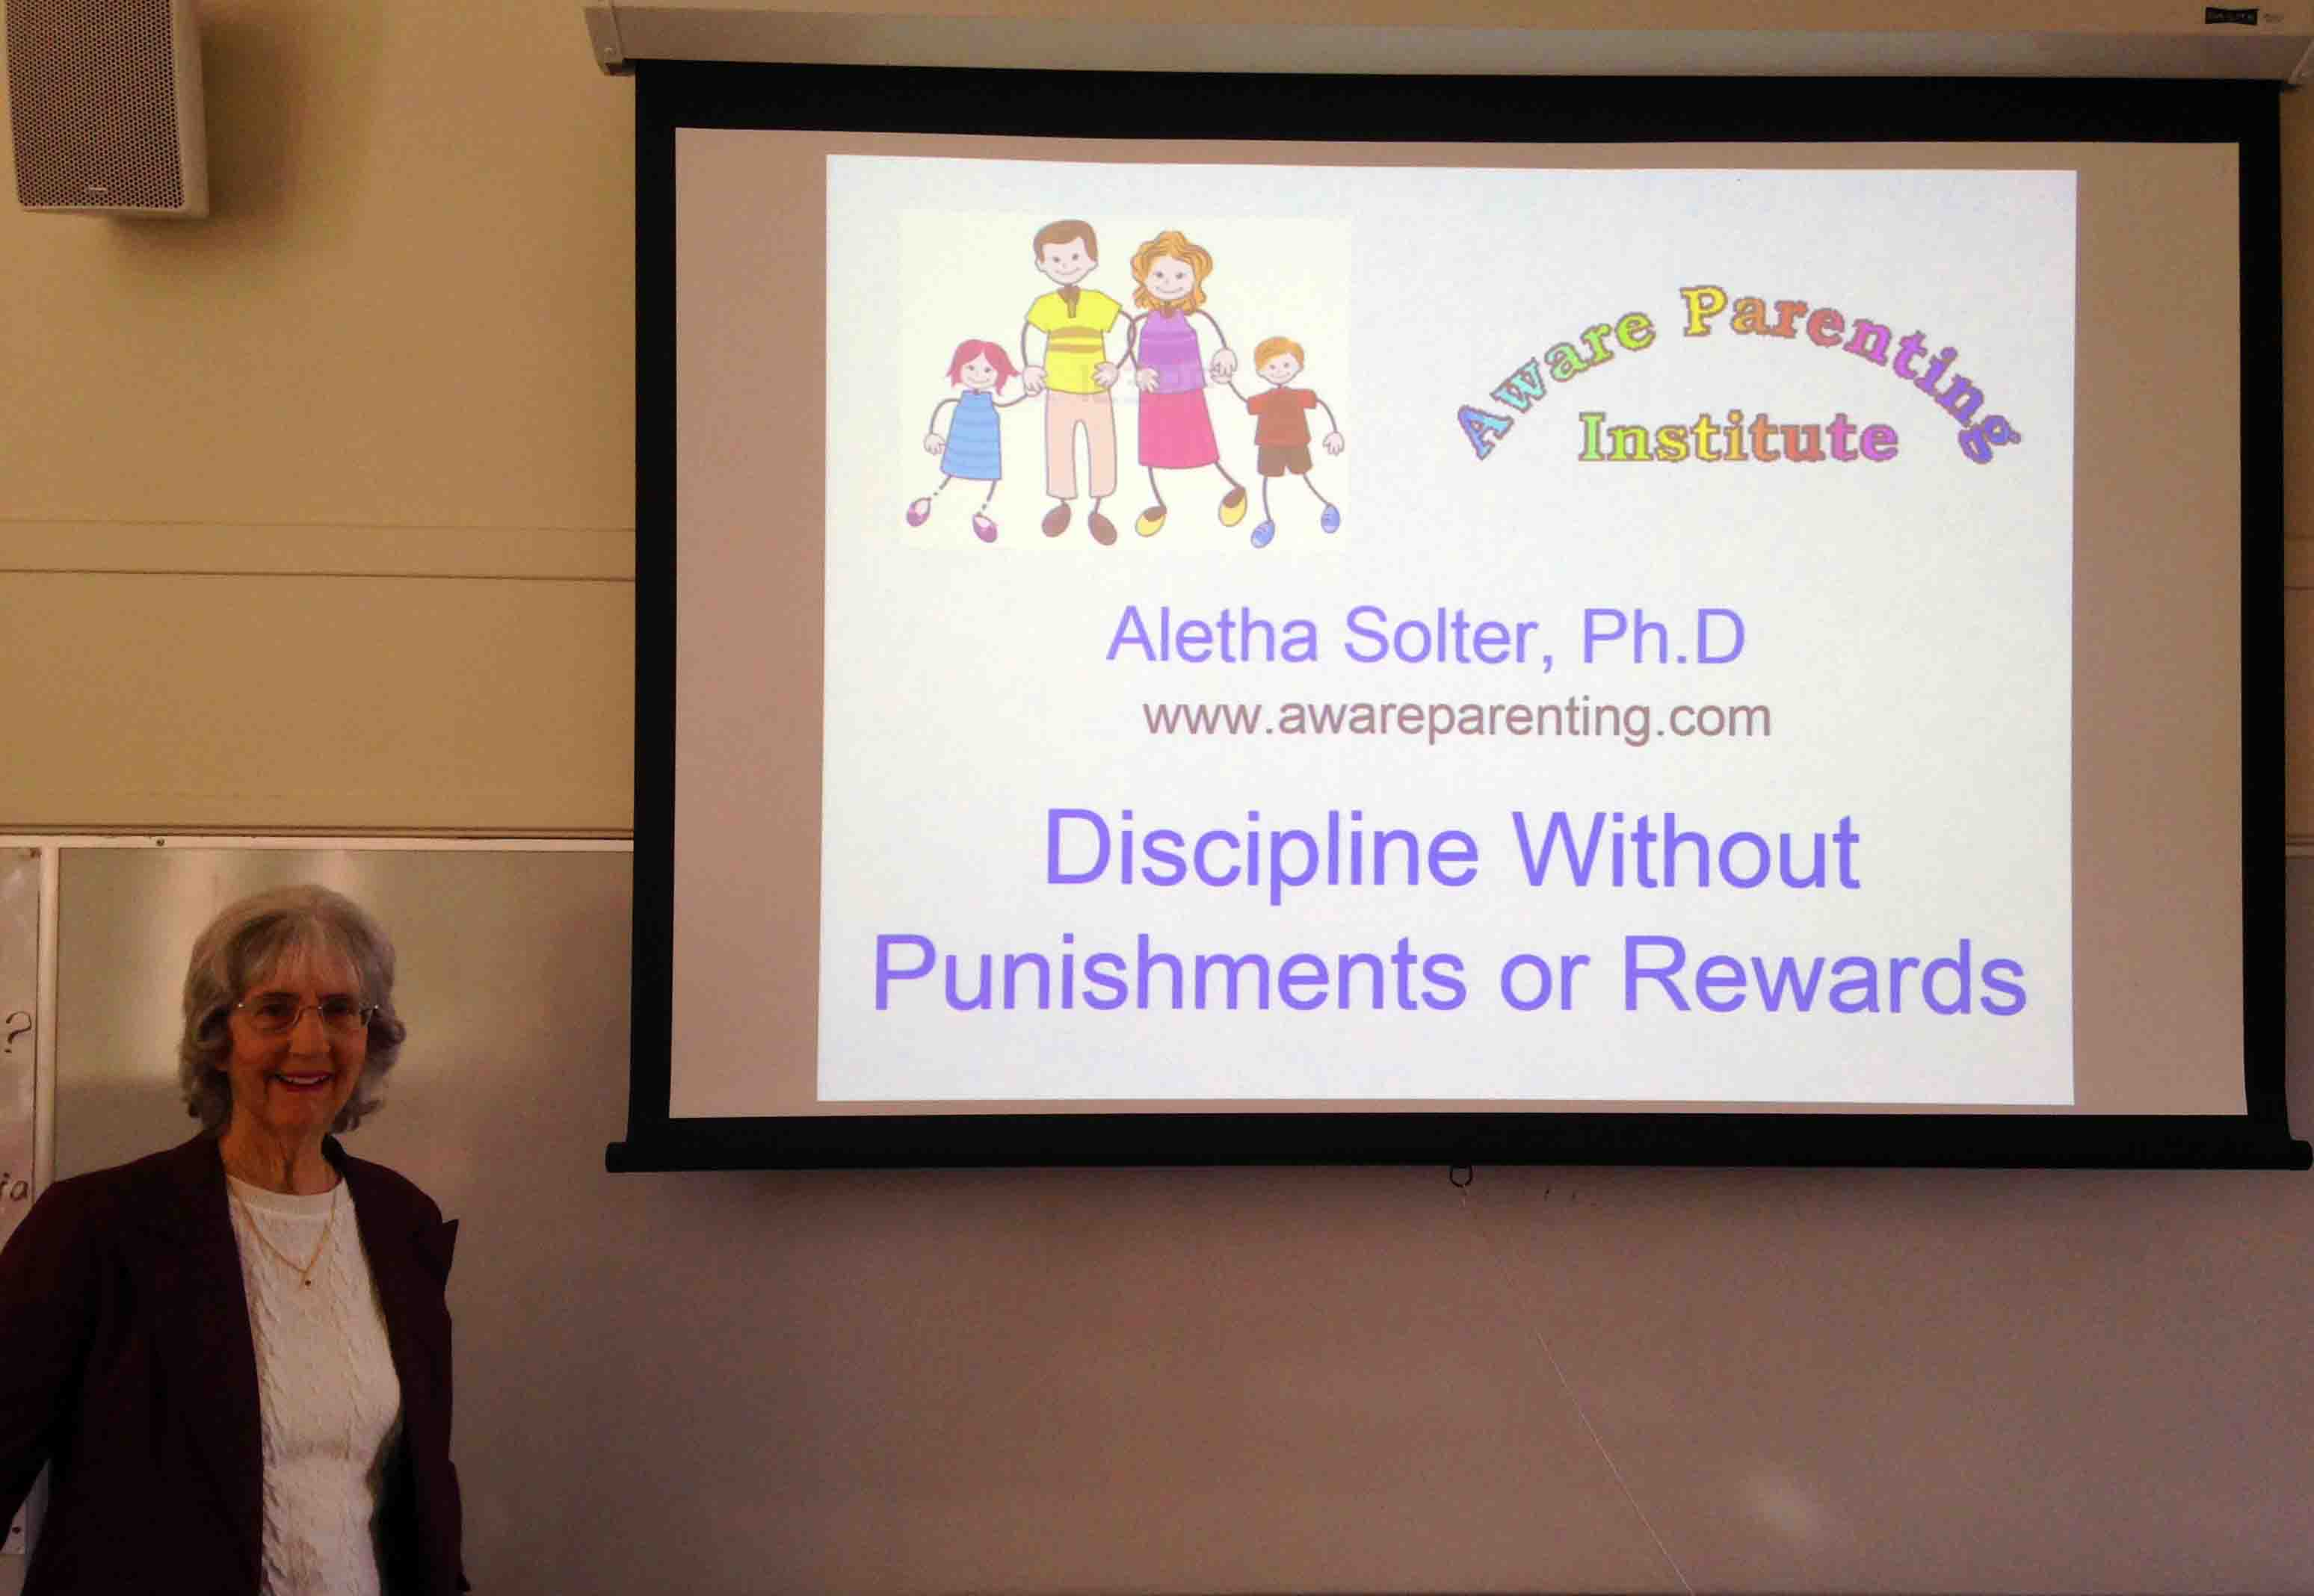 Aletha Solter leading a workshop in Santa Barbara, California